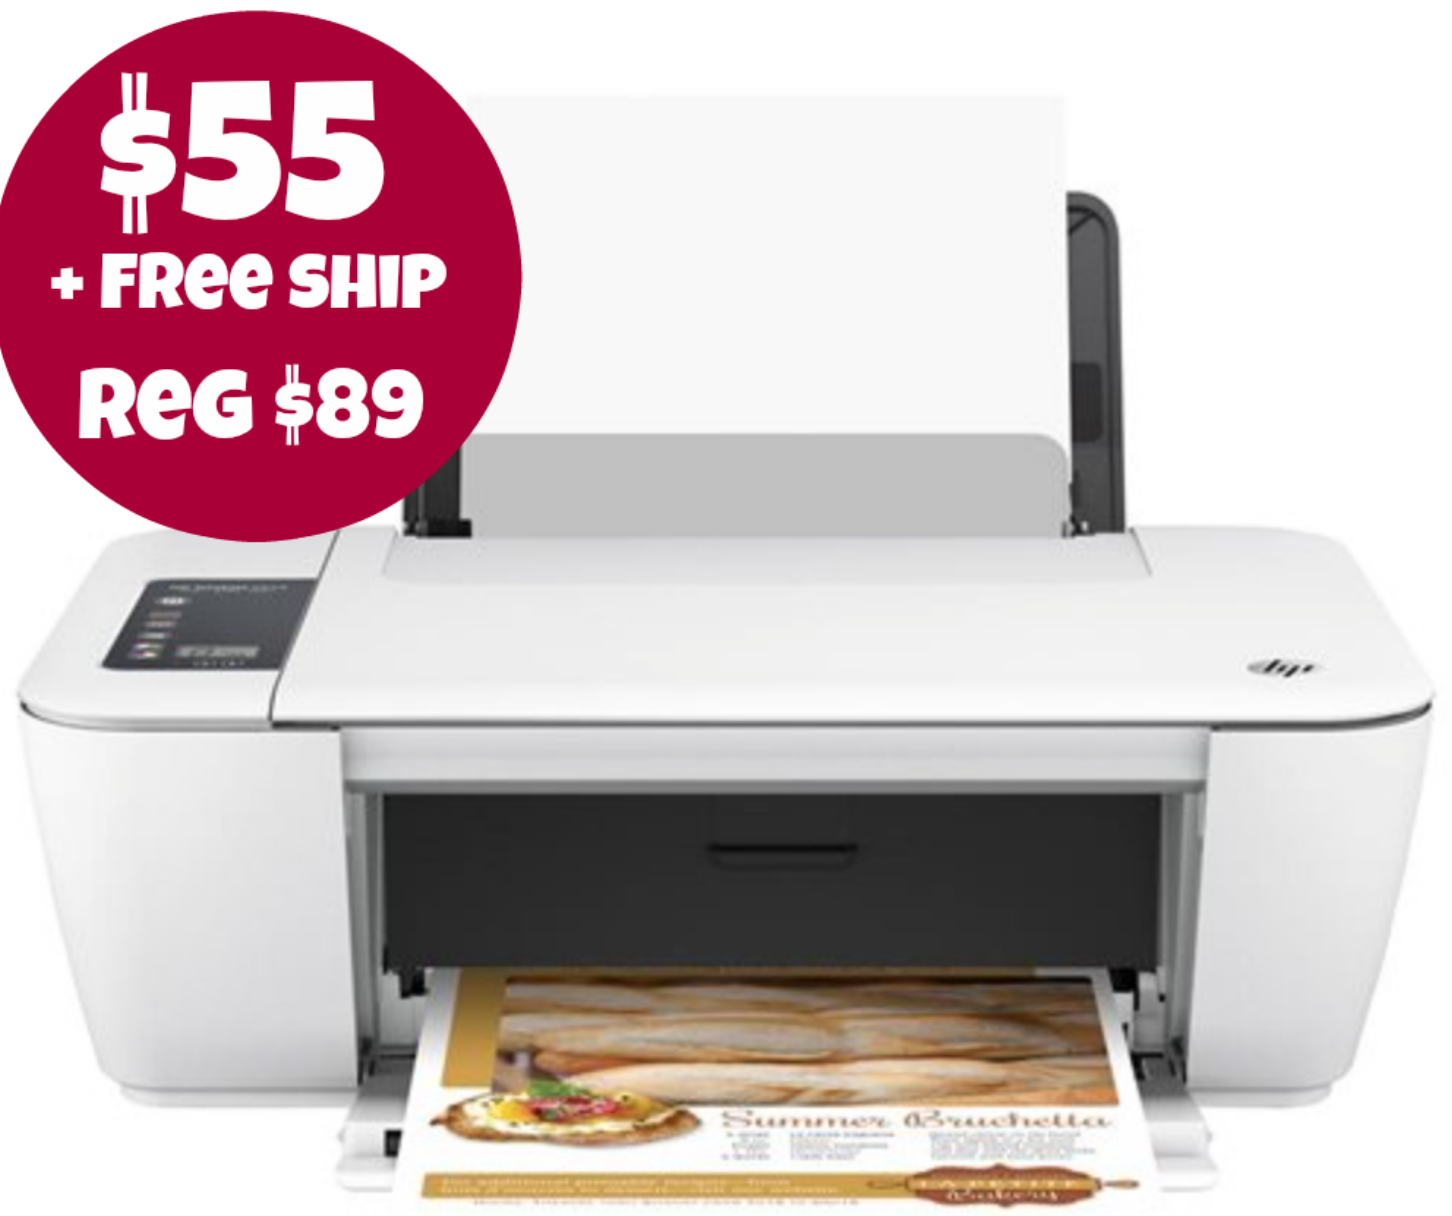 http://www.thebinderladies.com/2015/01/rakuten-hp-deskjet-2542-wireless-color.html#.VMfT4IfduyM